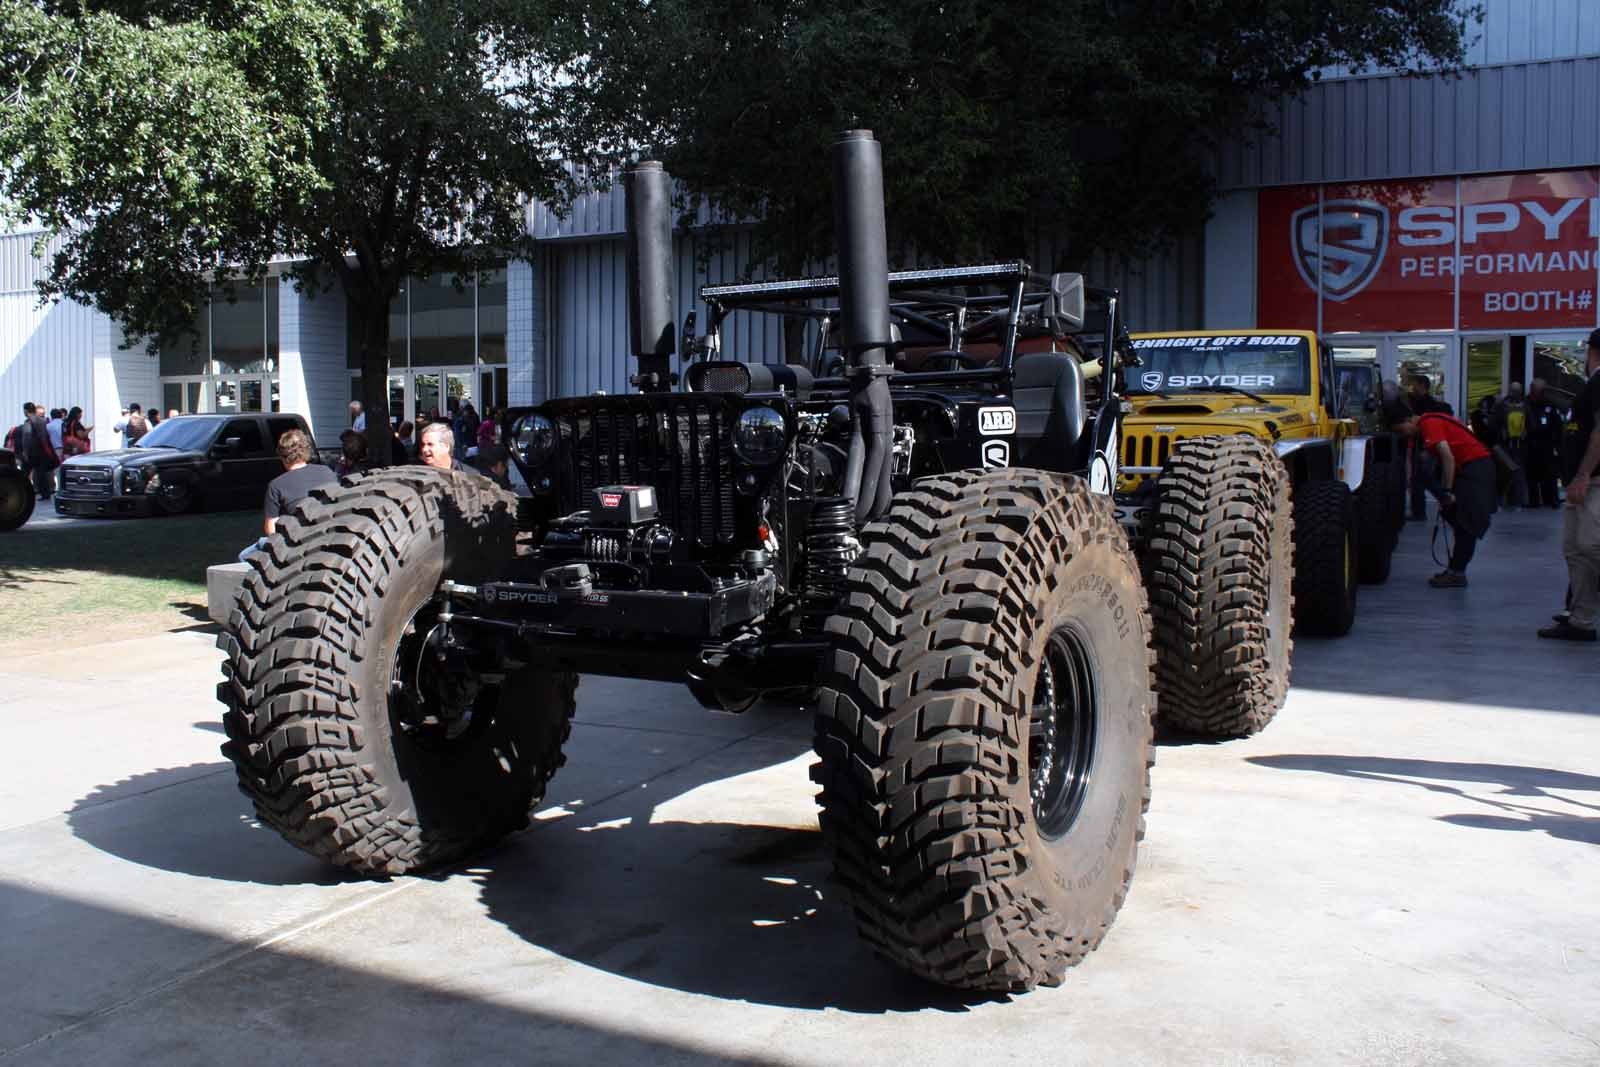 Jeep Wrangler Off Road For Sale >> Gallery: 15 Badass Jeeps from SEMA You Know You Want » AutoGuide.com News